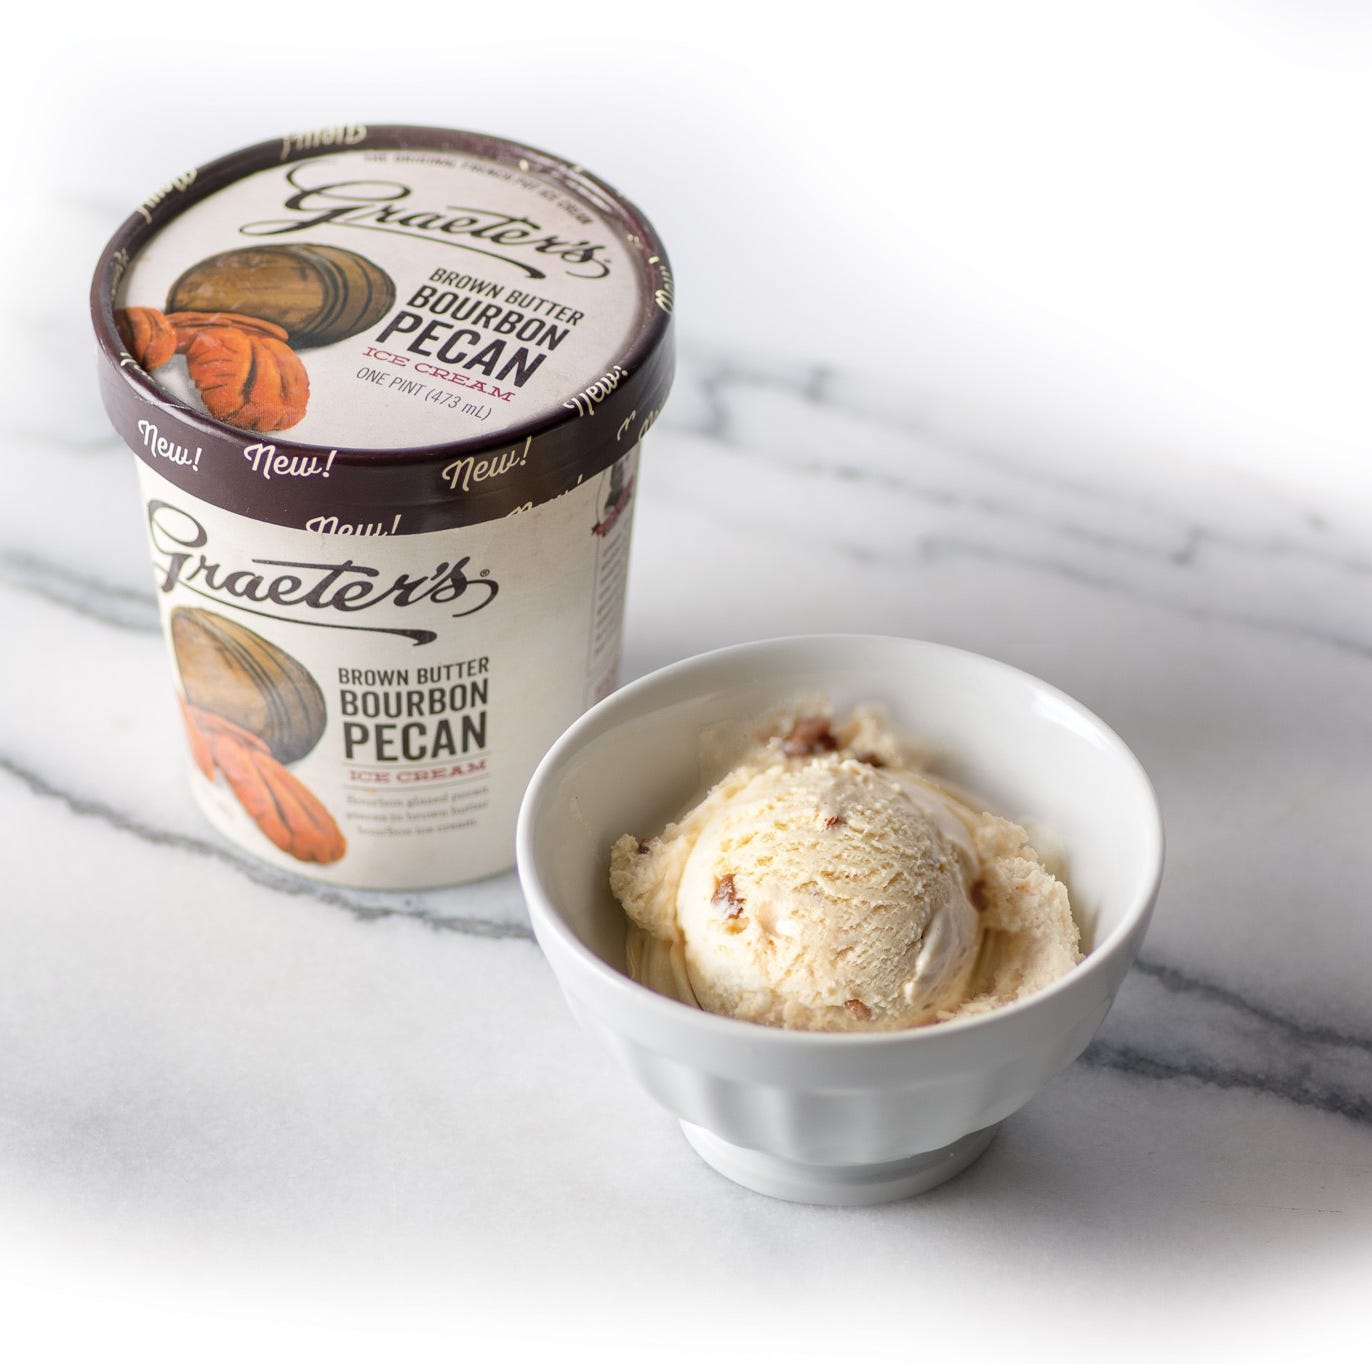 Graeter's releases Kentucky Derby-inspired flavor. Yes, it involves bourbon